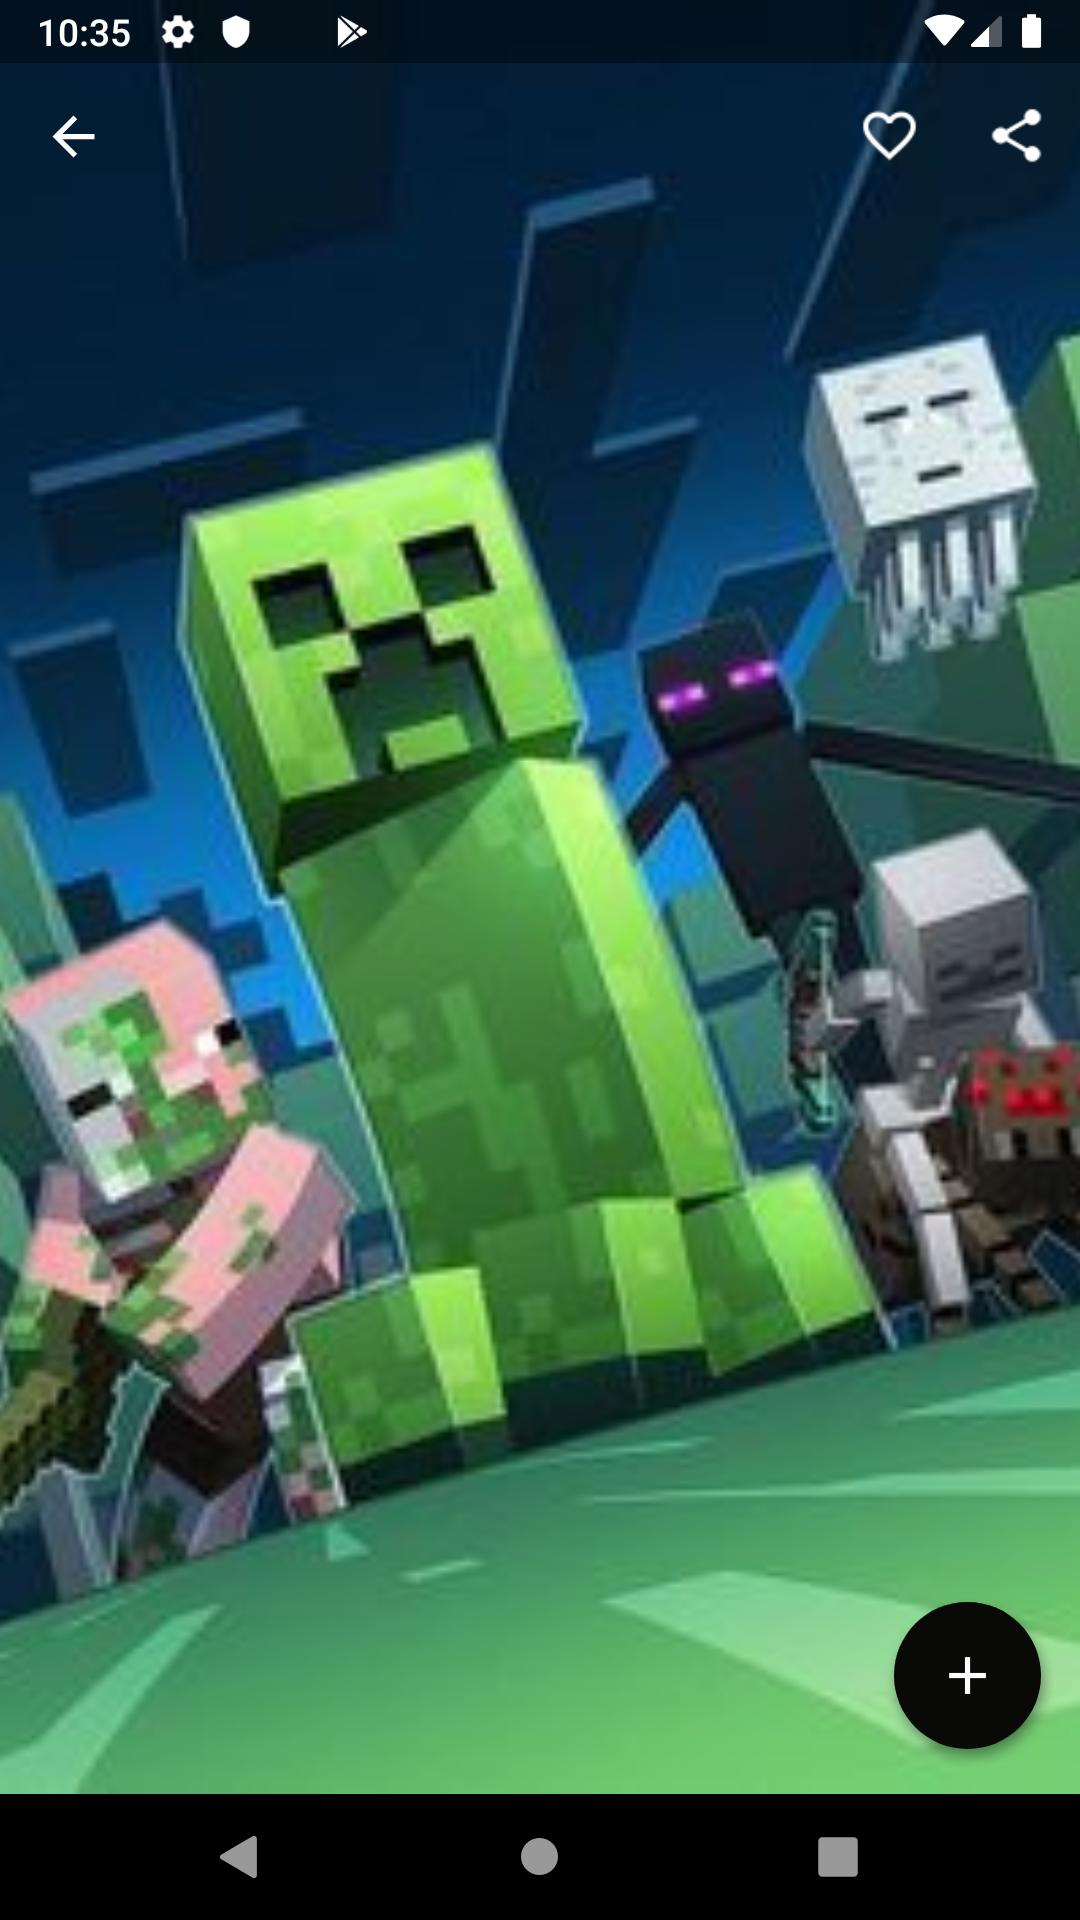 Download 670 Koleksi Wallpaper Hd Minecraft Gratis Terbaru